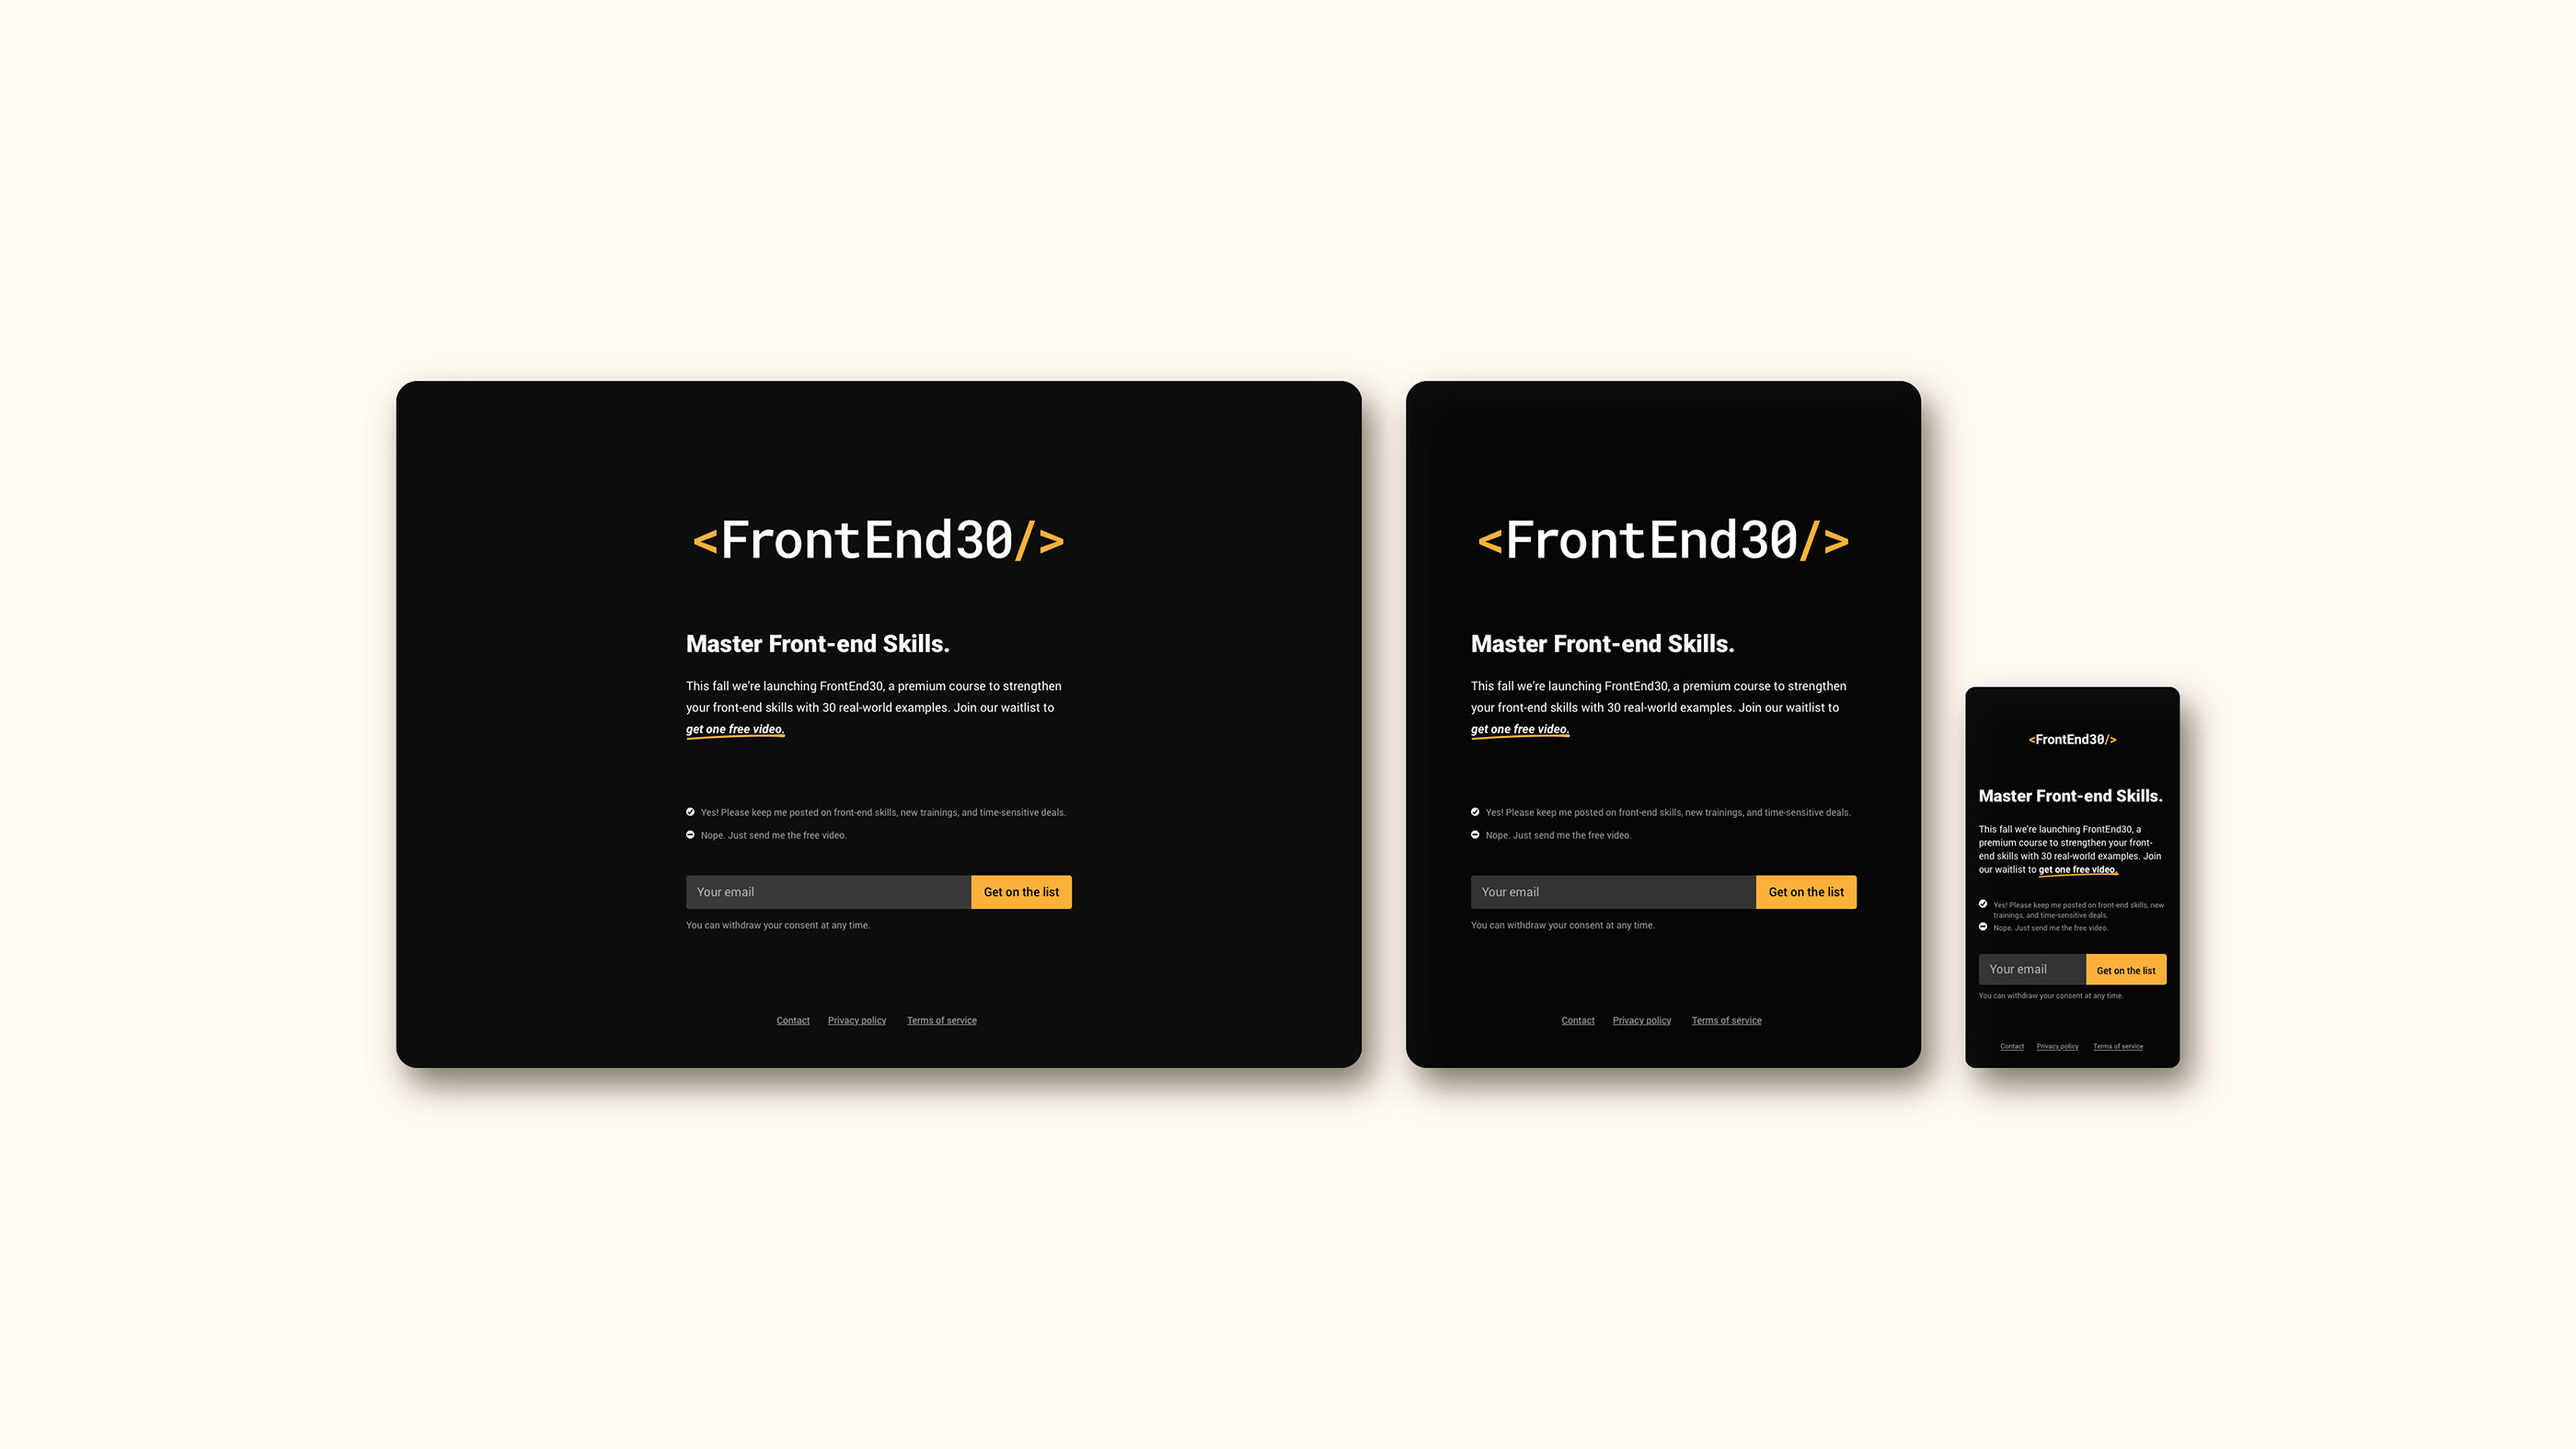 FrontEnd30